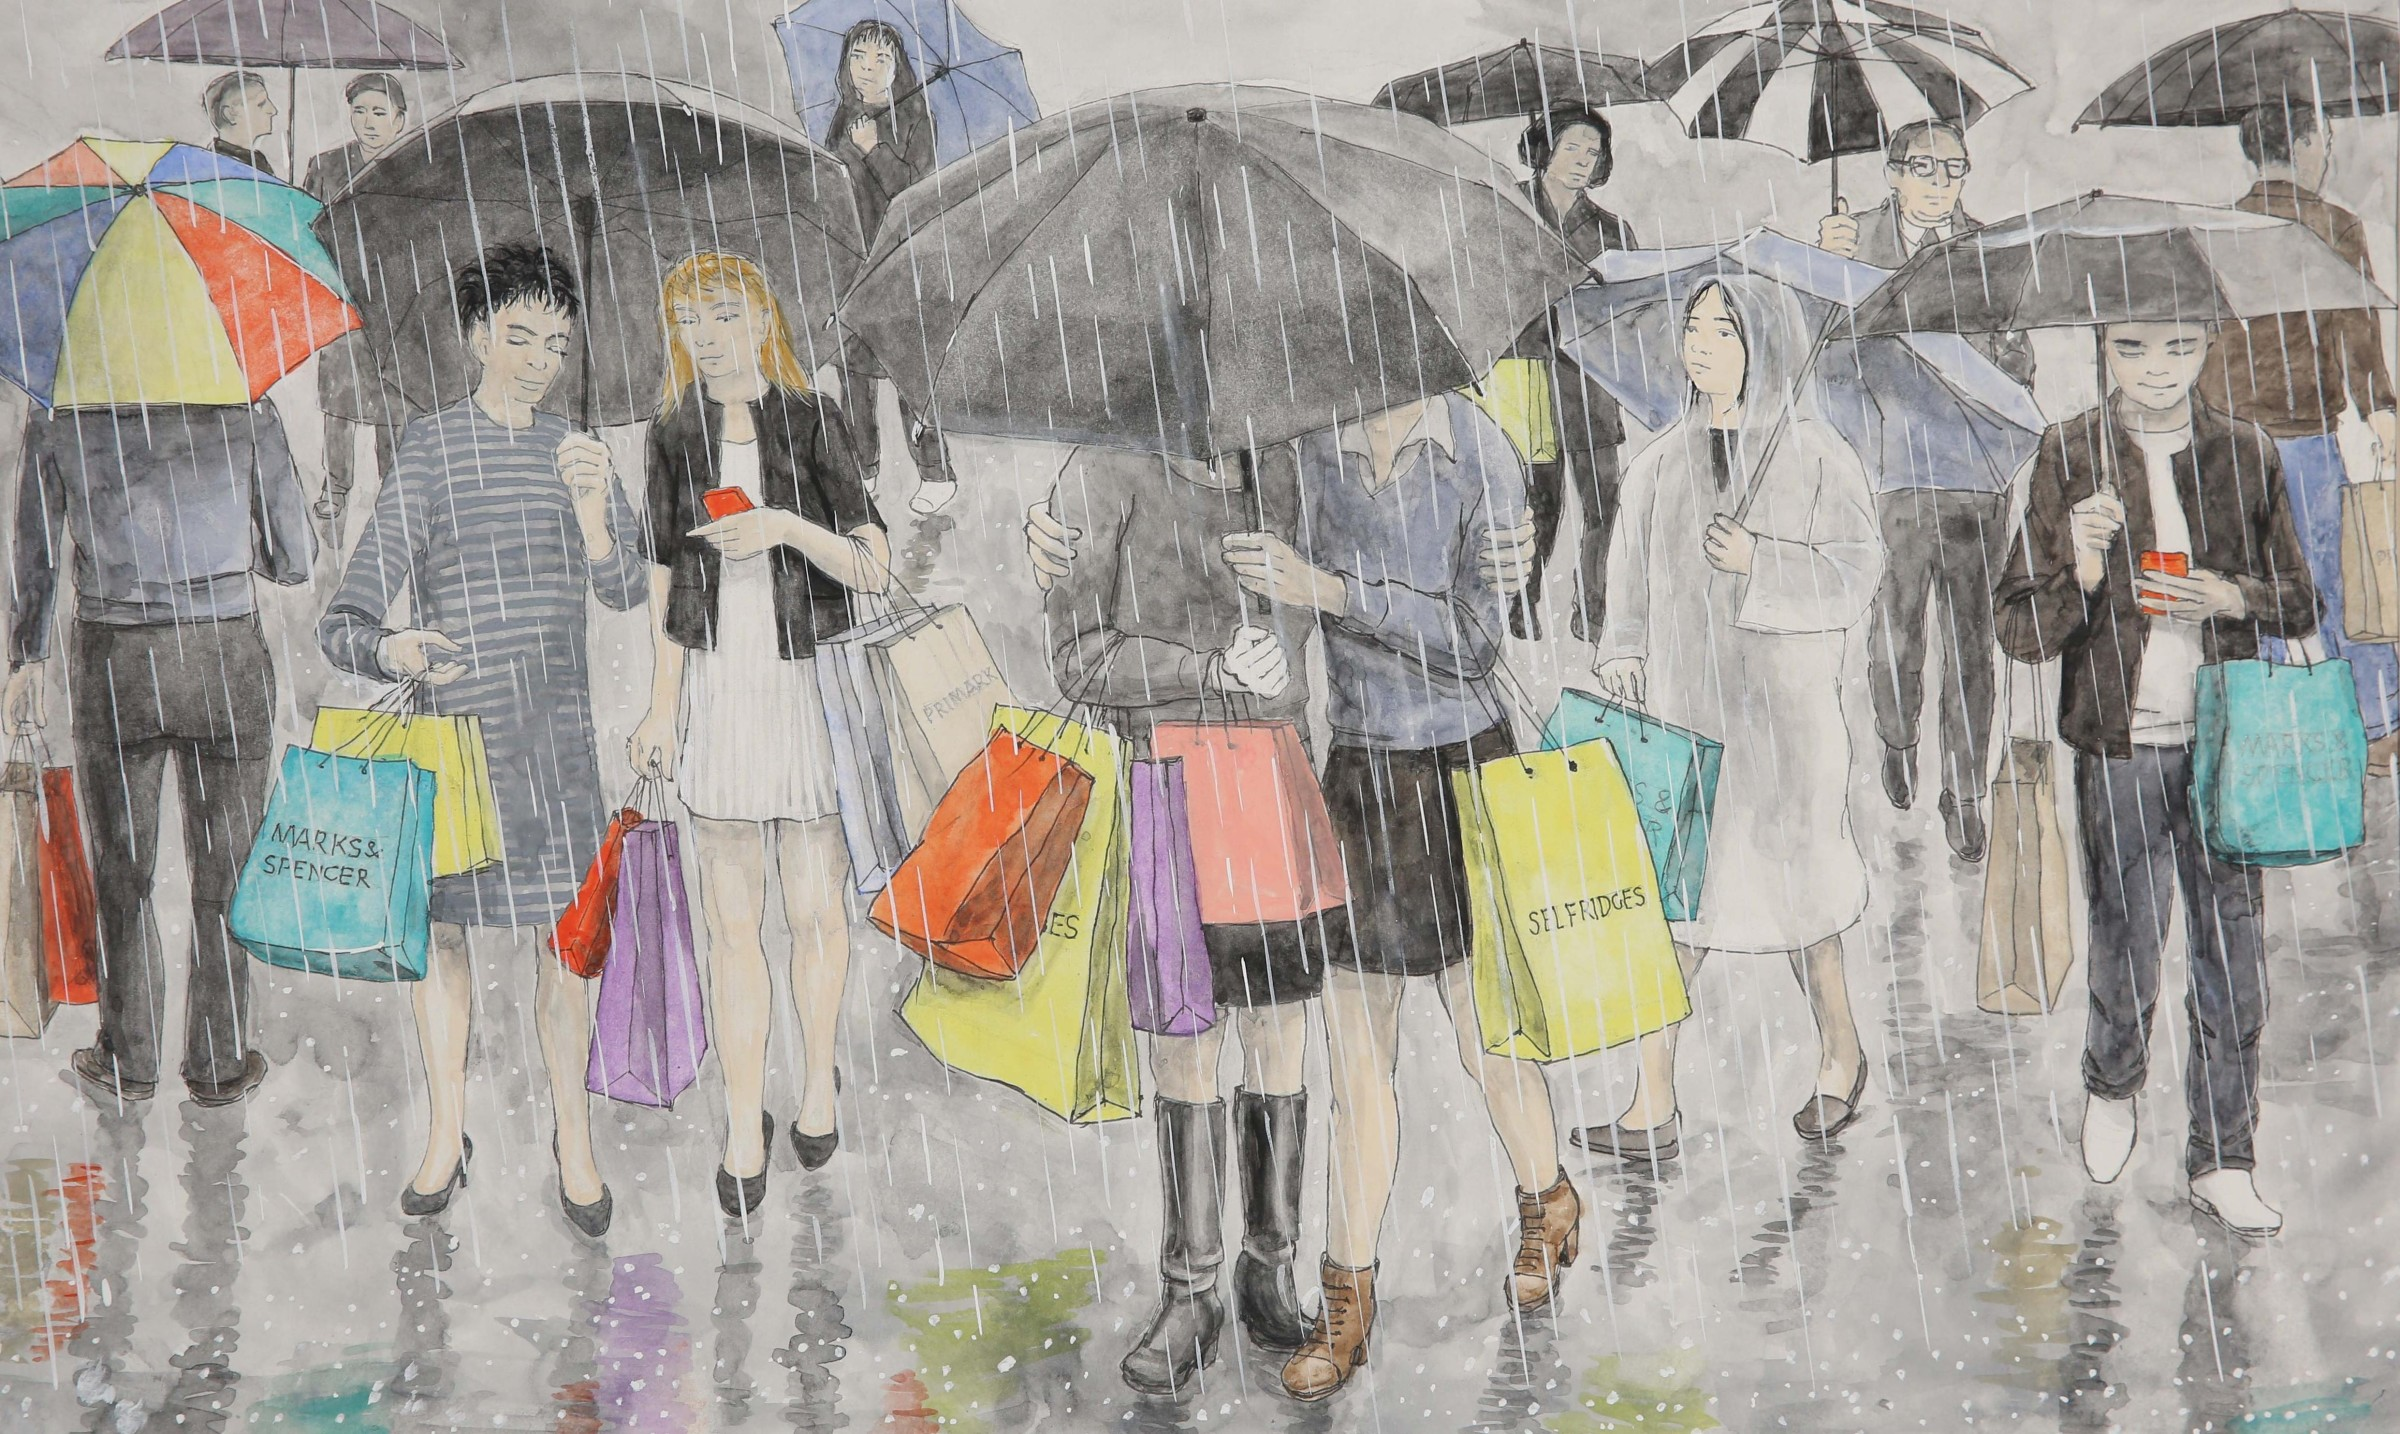 <span class=&#34;link fancybox-details-link&#34;><a href=&#34;/artists/79-arthur-lockwood/works/10214-arthur-lockwood-shopping-in-the-rain/&#34;>View Detail Page</a></span><div class=&#34;artist&#34;><span class=&#34;artist&#34;><strong>Arthur Lockwood</strong></span></div><div class=&#34;title&#34;><em>Shopping in the Rain</em></div><div class=&#34;medium&#34;>Watercolour</div><div class=&#34;dimensions&#34;>20cm x 29cm</div><div class=&#34;price&#34;>£550.00</div>